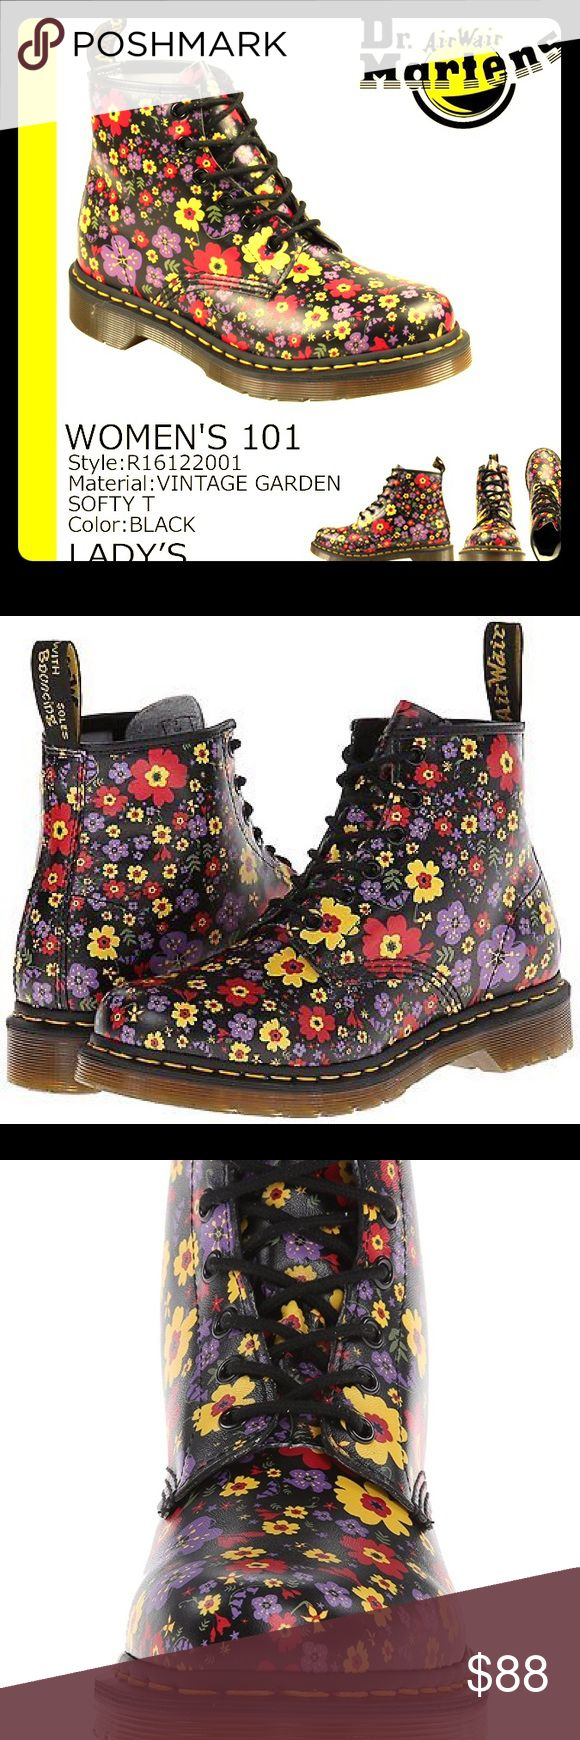 """New! Authentic DOC MARTEN Vintage Garden Boots Brand new, Women's Authentic Dr Marten's in bold & sassy Black Core Vintage Garden in size 10. EVERYONE needs their """"happy shoes"""", & these are absurdly fun, perfect amount of BohoEdge.AND functional all the while !! 😳....With genuine leather floral poppy print on upper, bold yellow stitching atop black rubber oil/acid/skid resistant sole. Air-Cushioned Outsole=Supernatural Comfort! Height ~1"""", Shaft ~6"""" (from arch) Boot Opening: 11"""",  Platform…"""